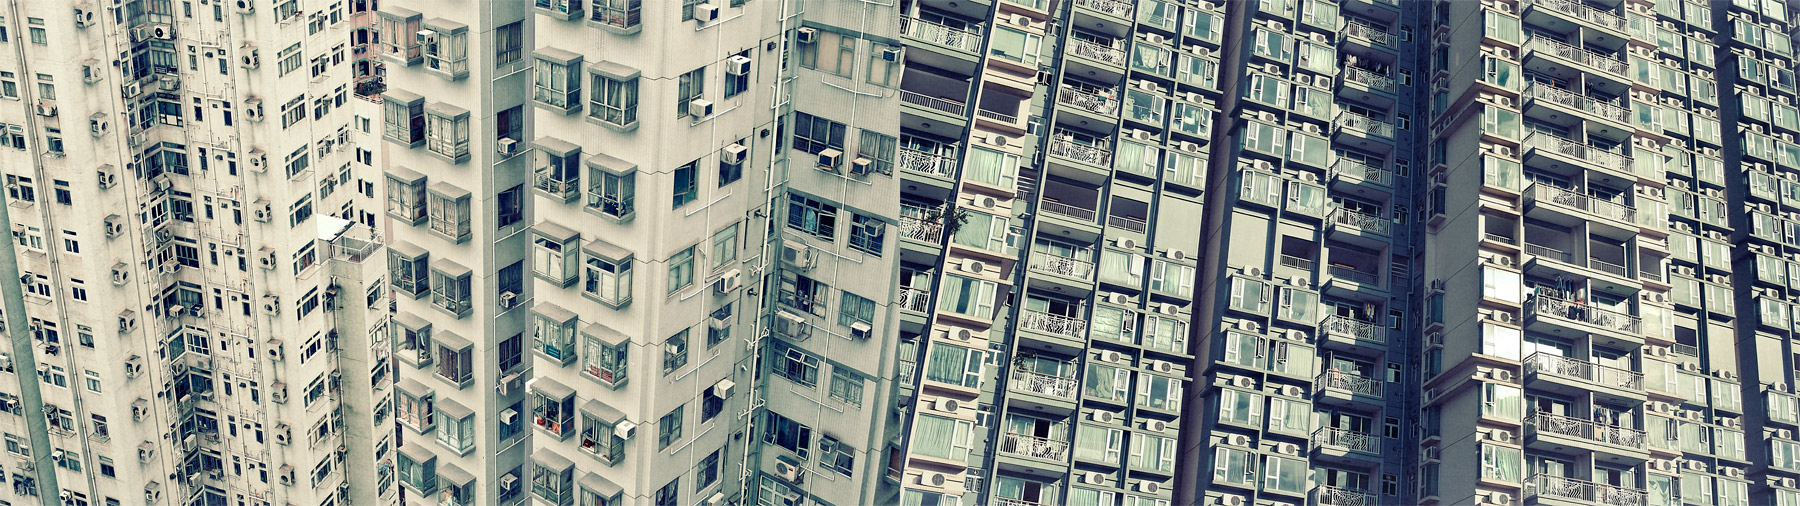 Good Boy Wolf Photographer, filmic landscape,  tall sky raise apartments in hong kong